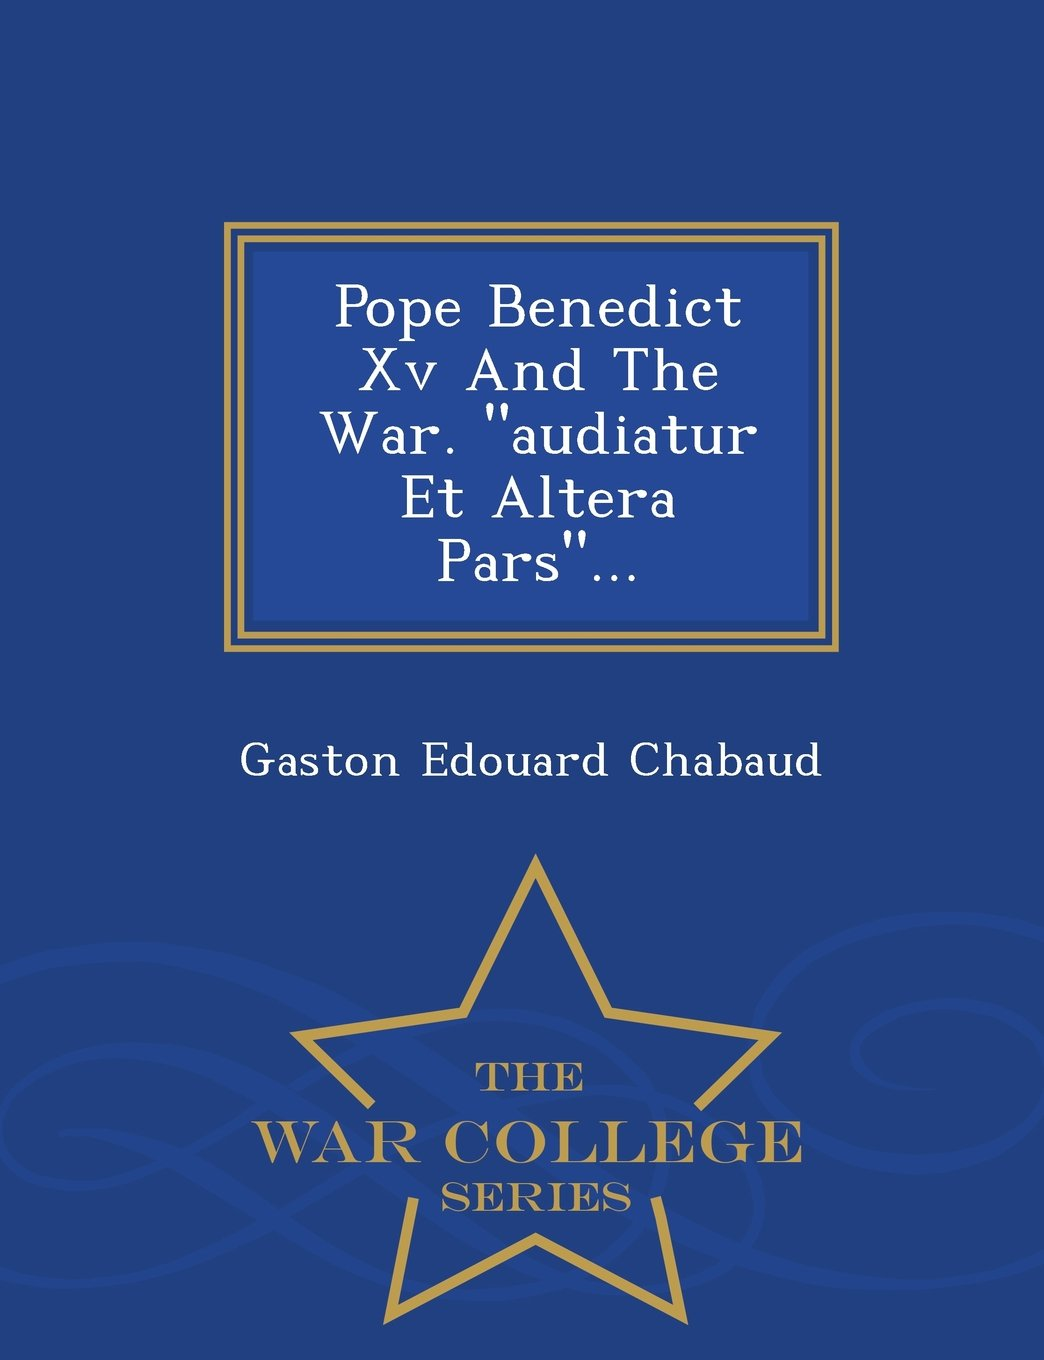 "Pope Benedict Xv And The War. ""audiatur Et Altera Pars""... - War College Series pdf"